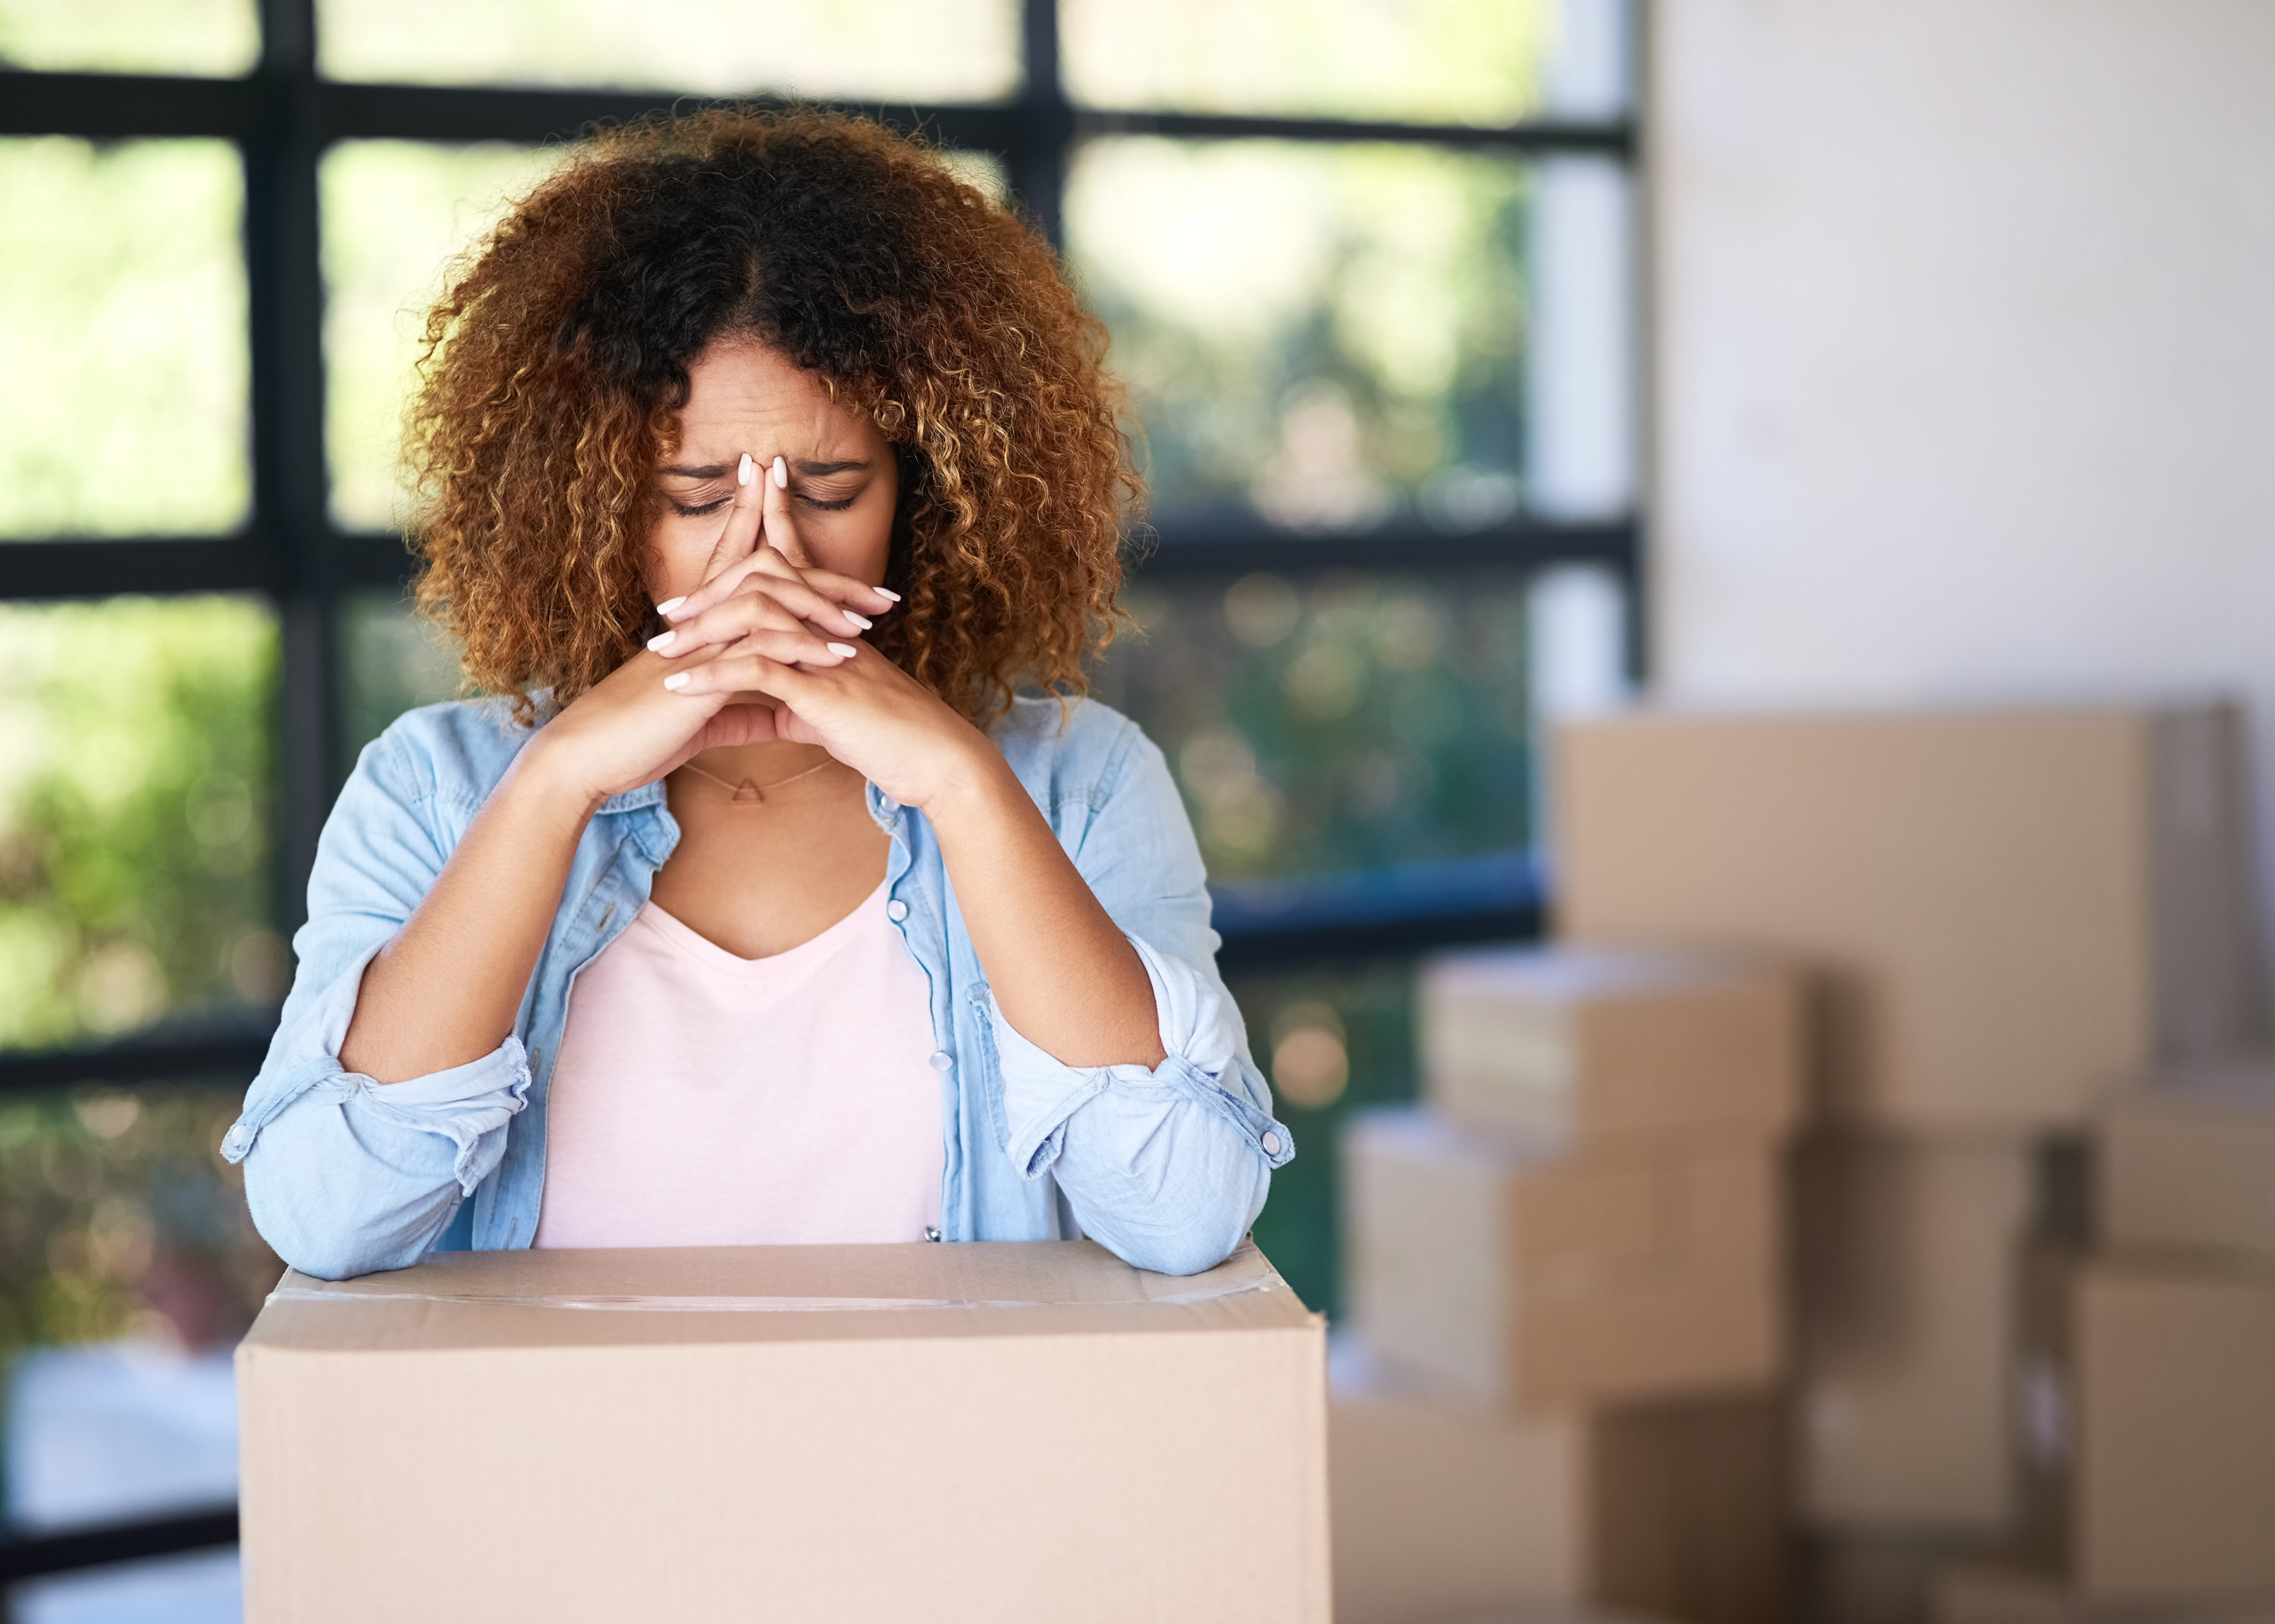 A woman appearing stressed while moving